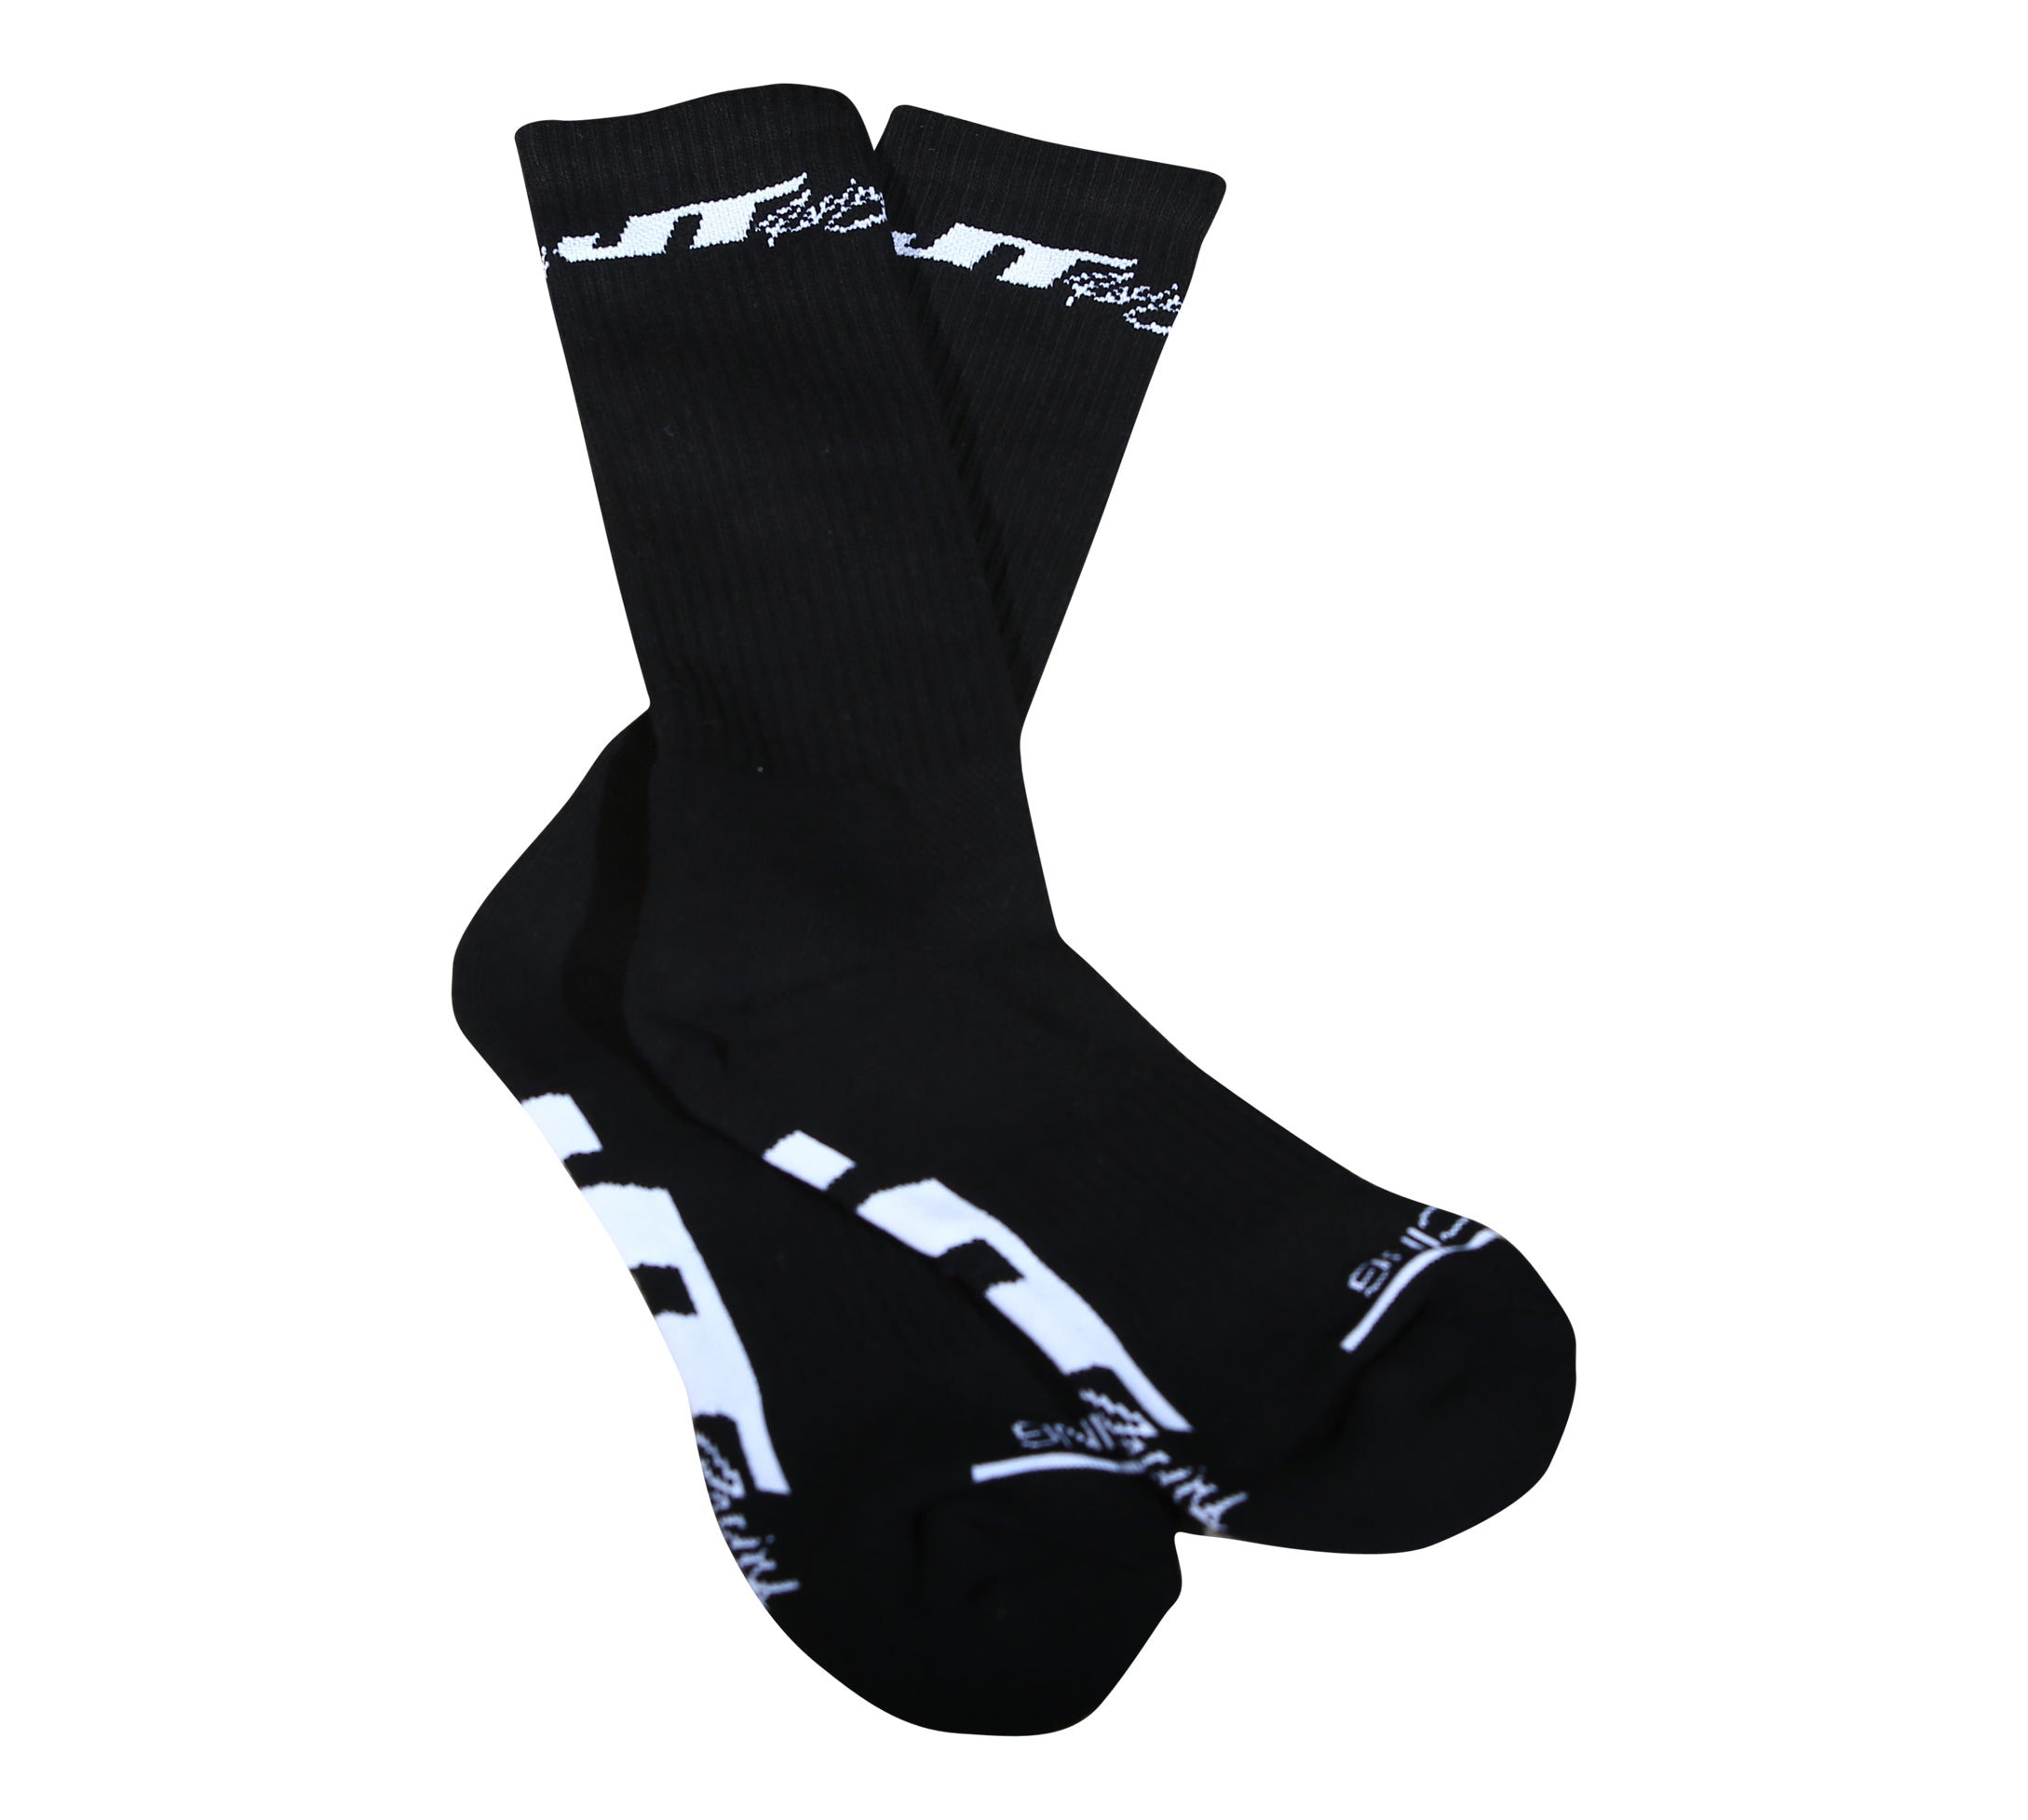 JT Racing-Crew Socks, Black/White